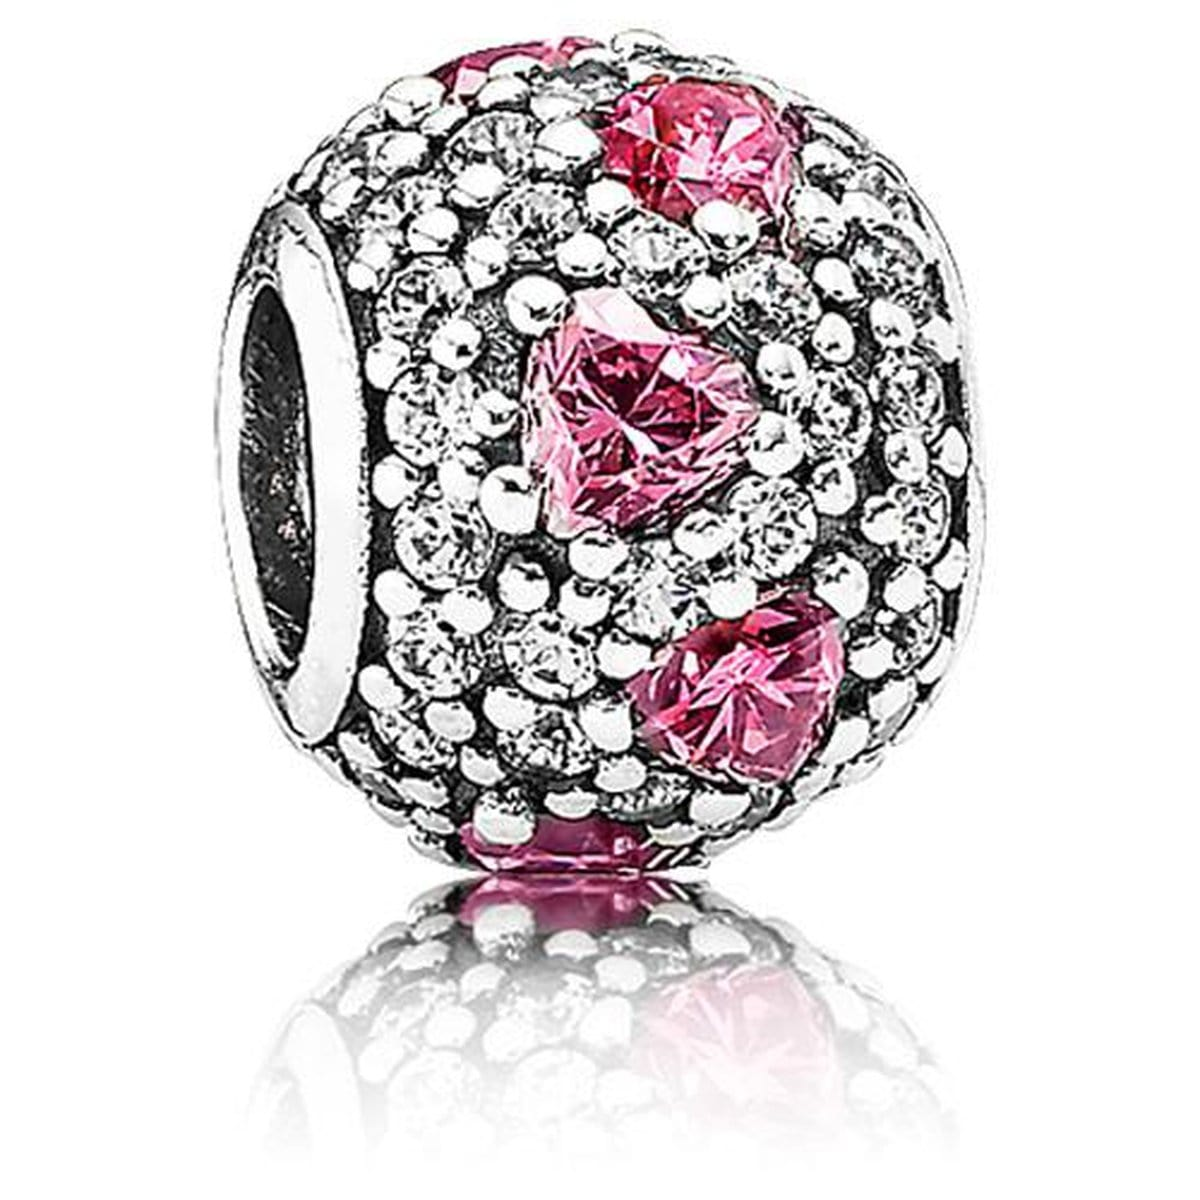 Bead Shimmering Heart Pink Cubic Zirconia Charm - 791249CZS-Pandora-Renee Taylor Gallery